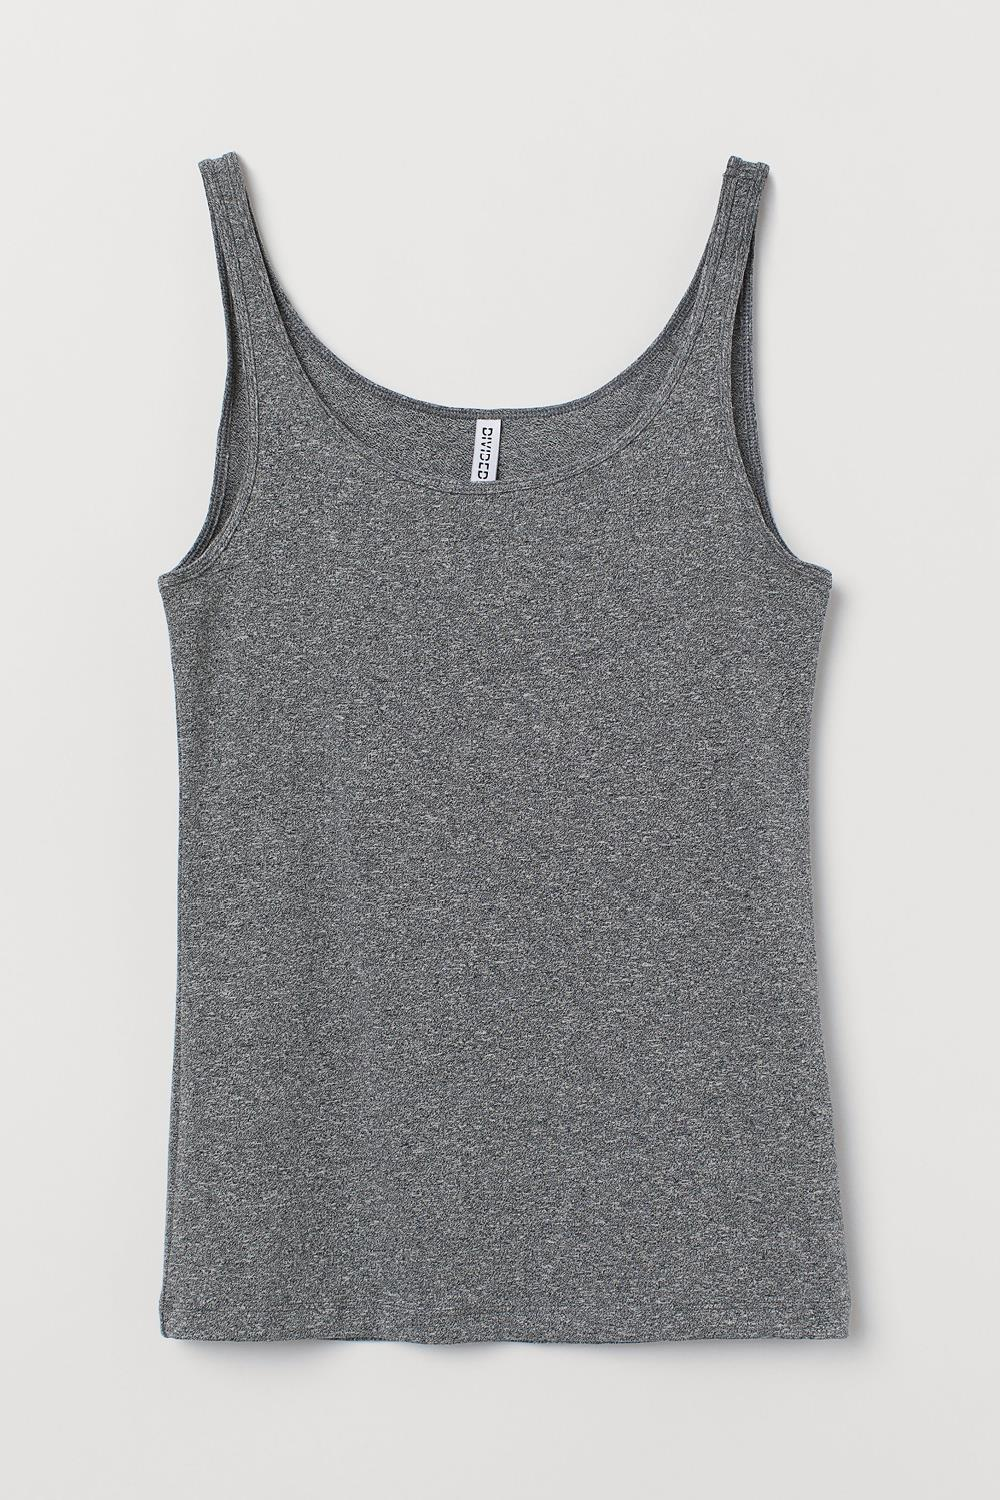 arethalagalleta look casual top h&m 4,99€